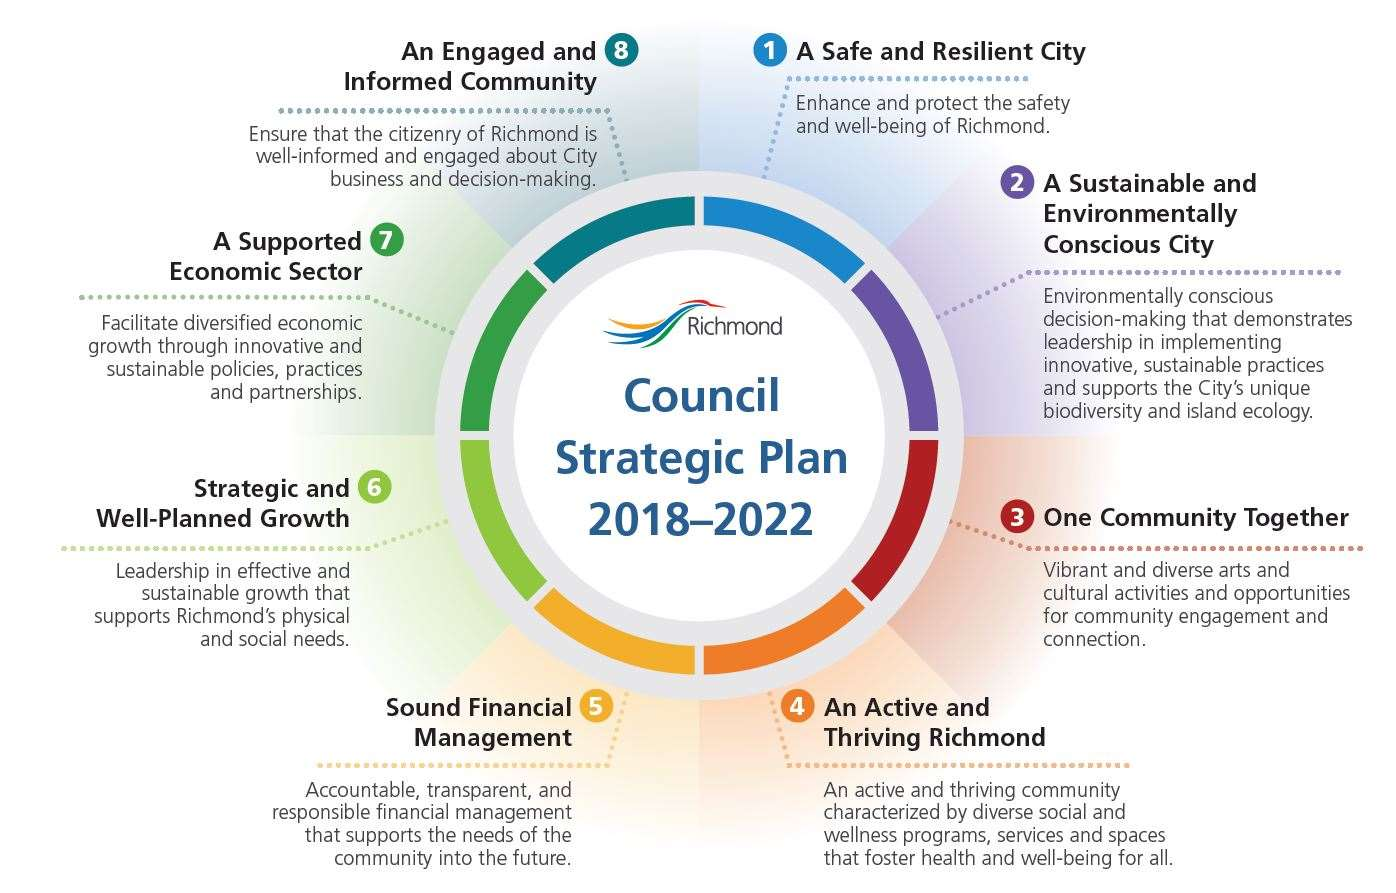 Council Strategic Plan - Focus Circle